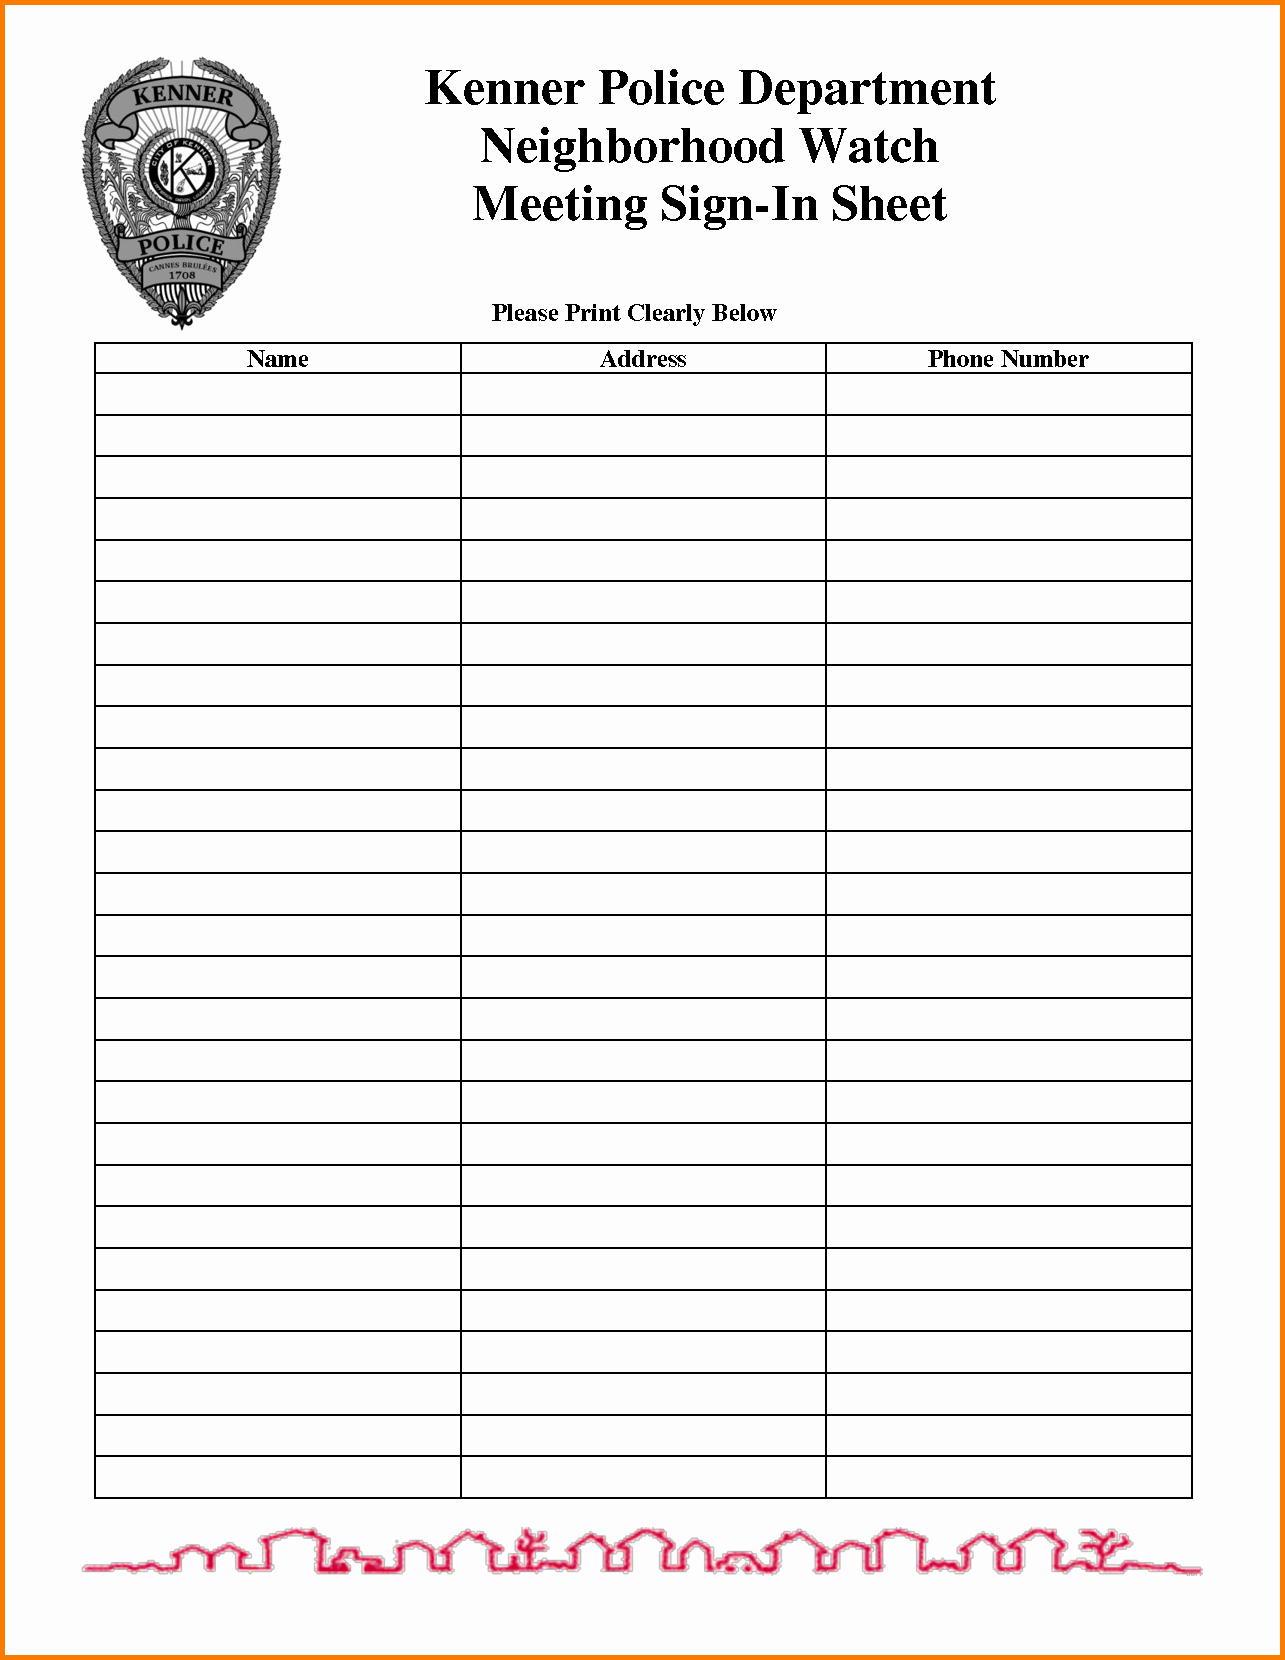 Meeting Sign Up Sheet Template Best Of Meeting Sign In Sheet Template